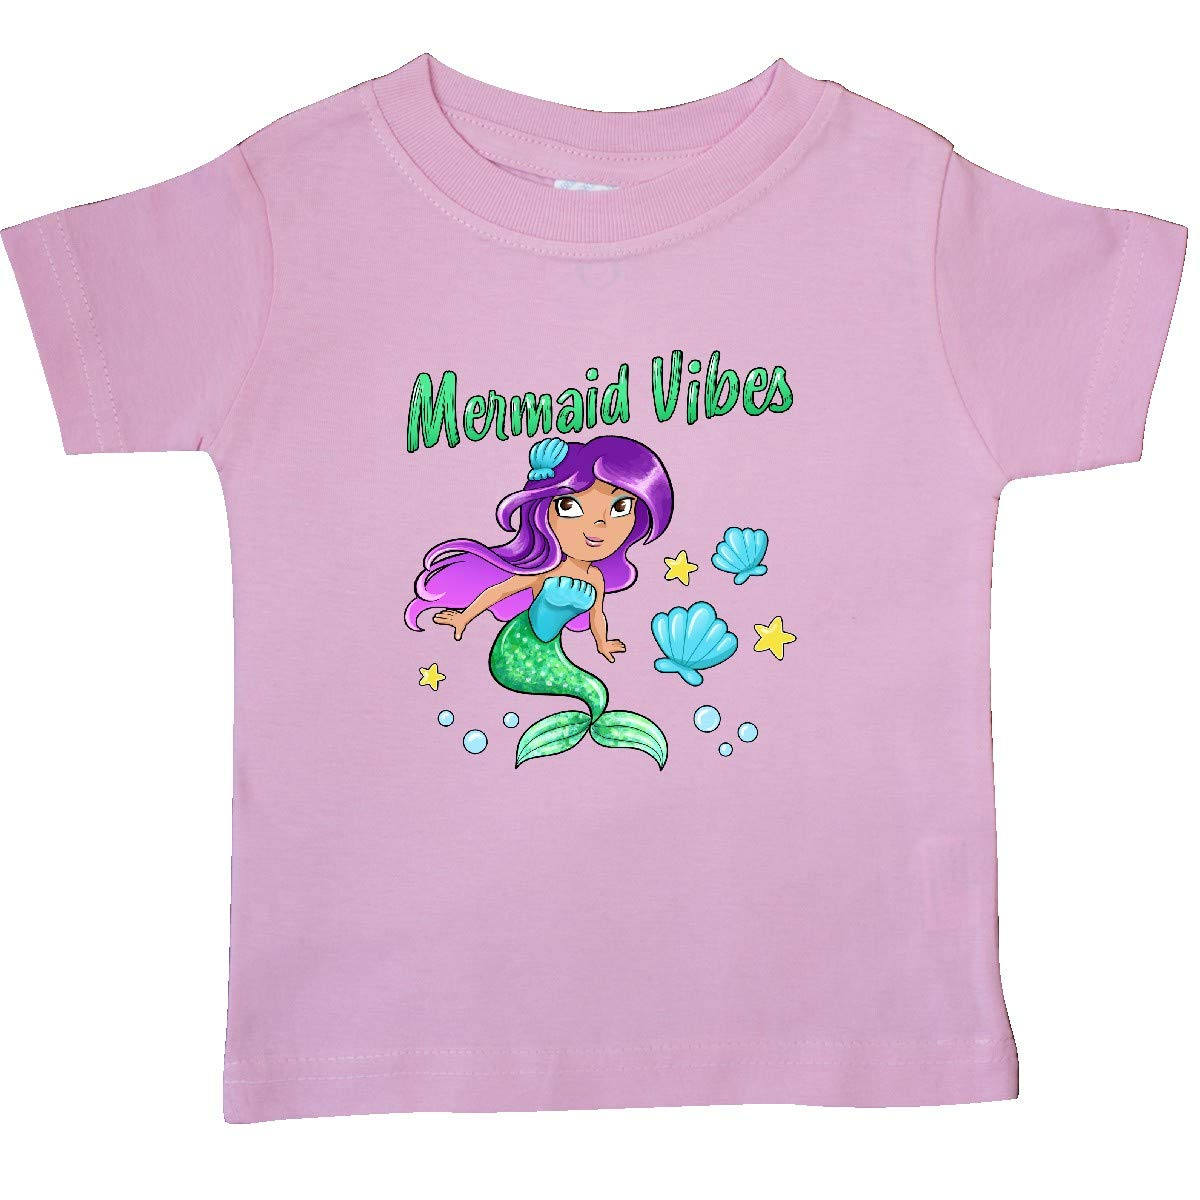 Cute Mermaid with Green Tail Baby T-Shirt inktastic Mermaid Vibes